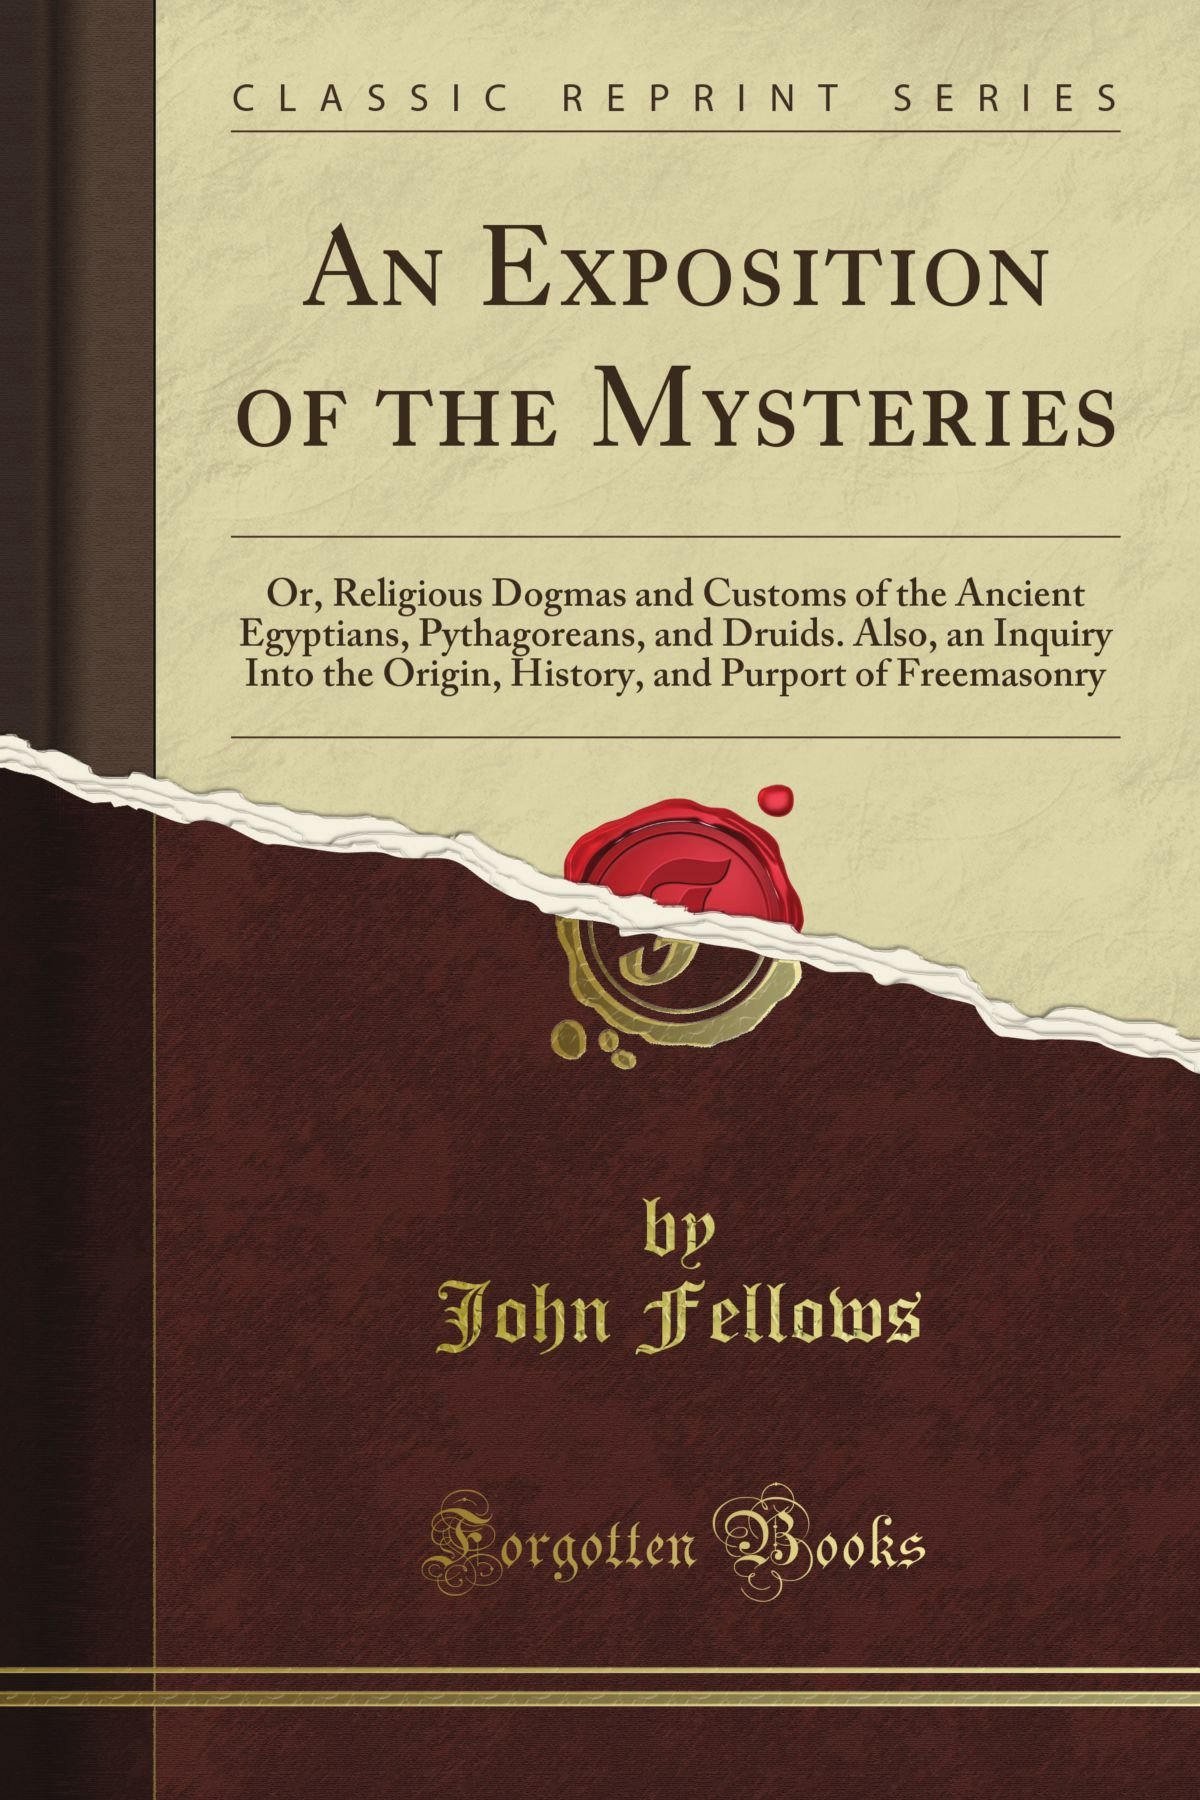 An Exposition of the Mysteries: Or, Religious Dogmas and Customs of the Ancient Egyptians, Pythagoreans, and Druids. Also, an Inquiry Into the Origin, ... and Purport of Freemasonry (Classic Reprint)